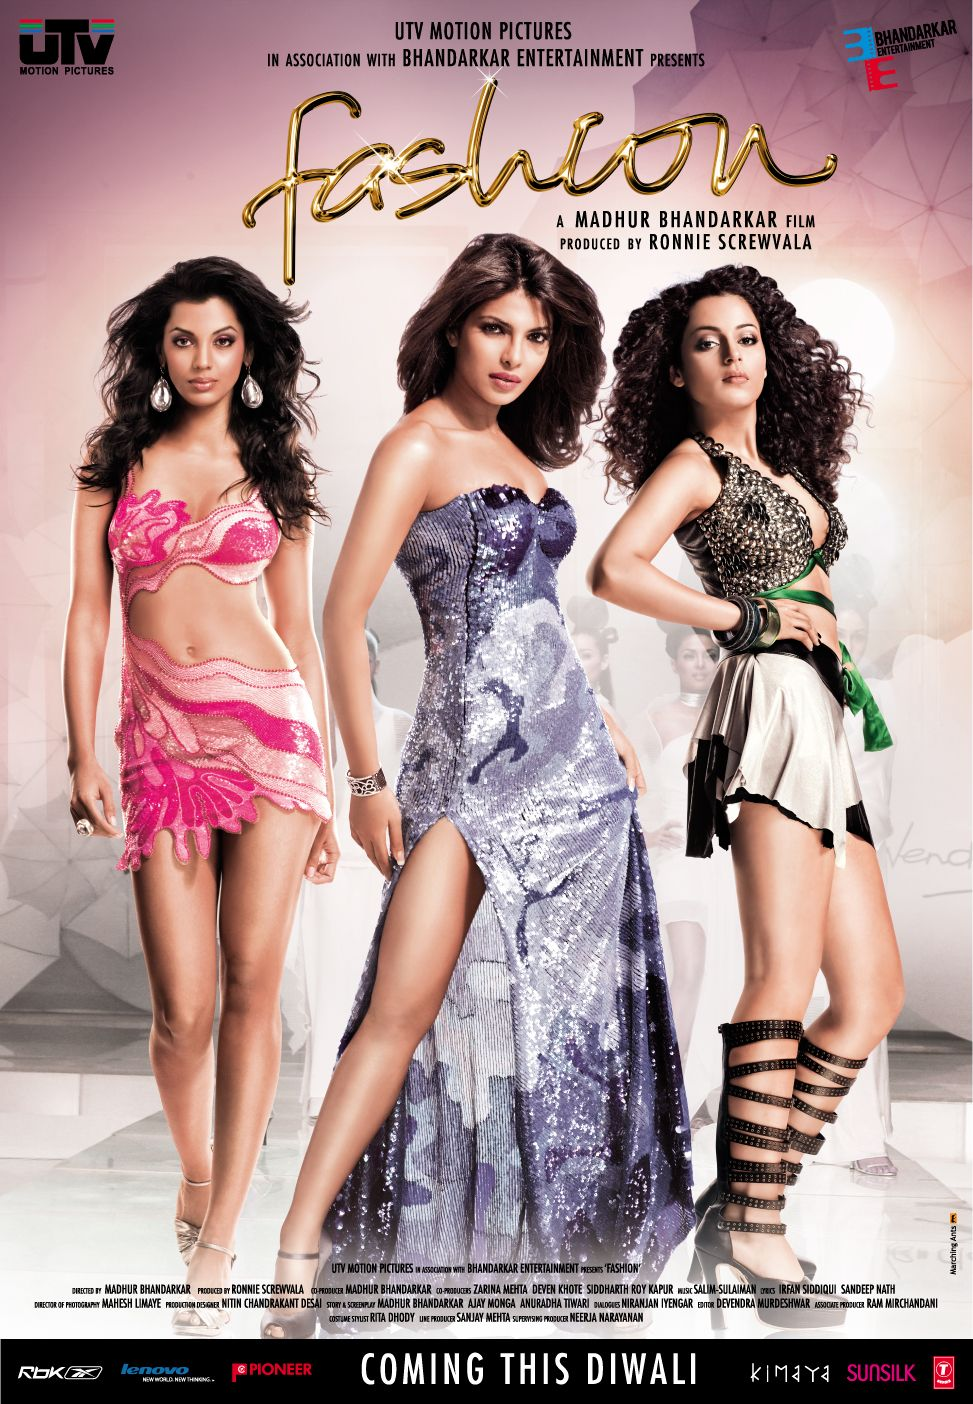 fashion, priyanka chopra, kangana ranaut and mugda godse